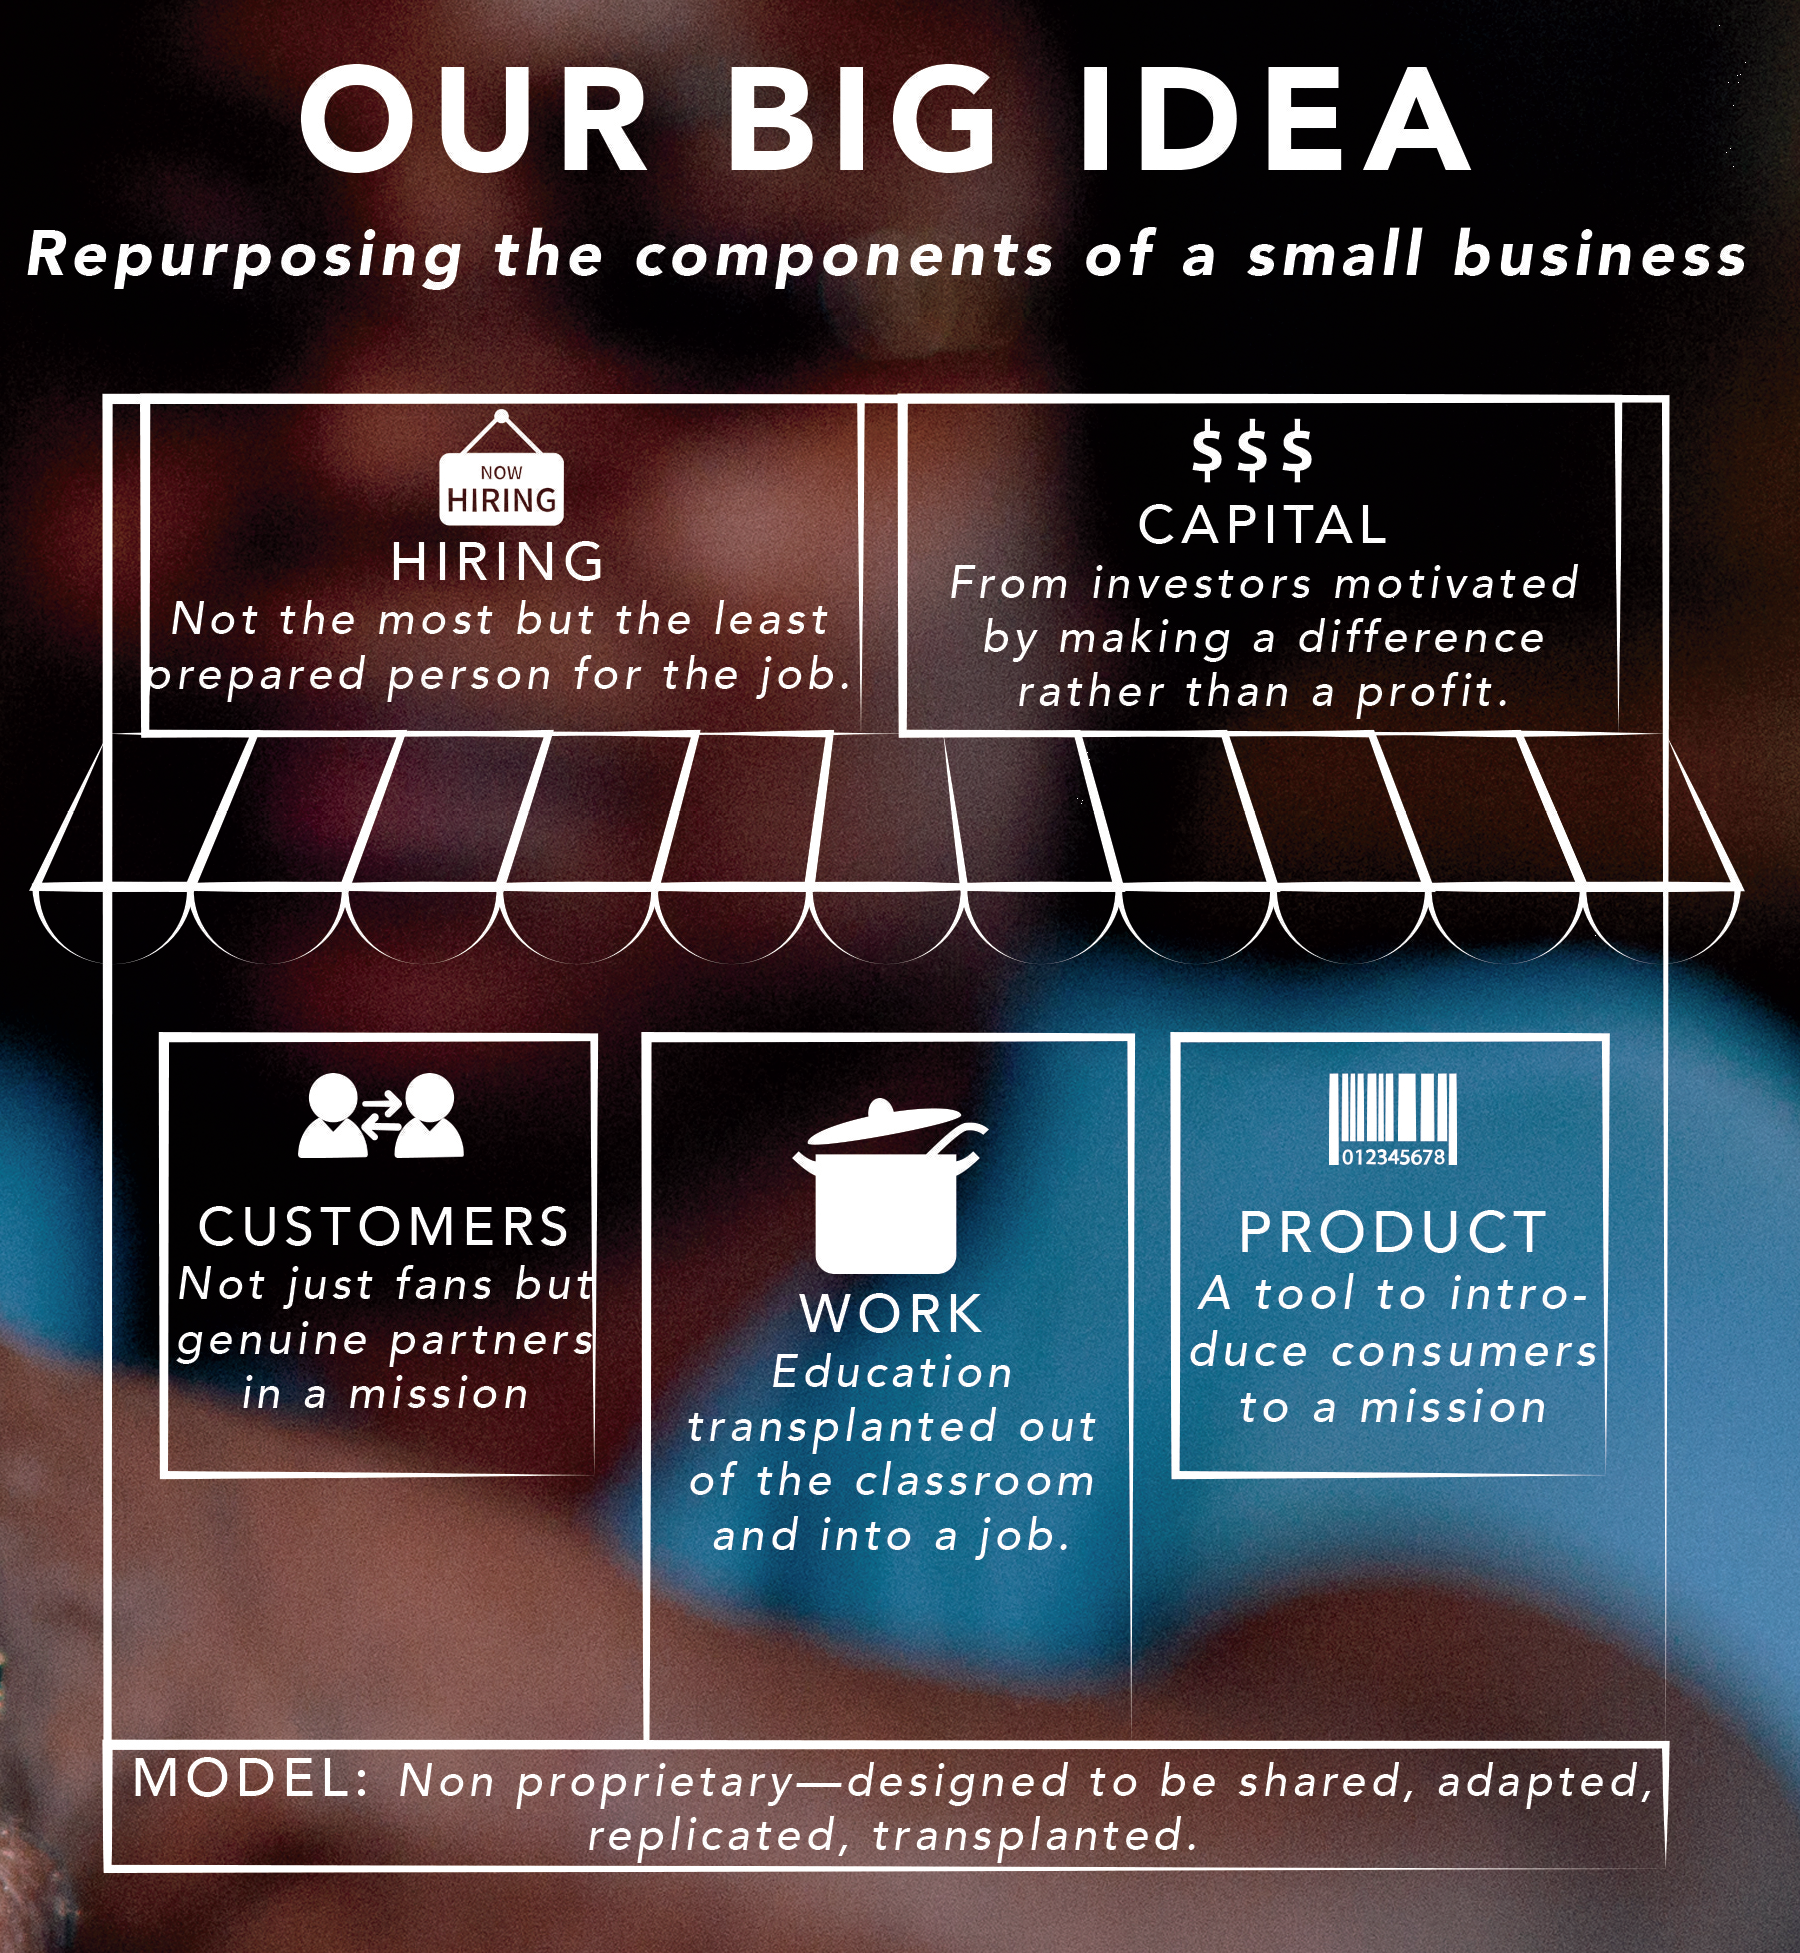 Our Big Idea